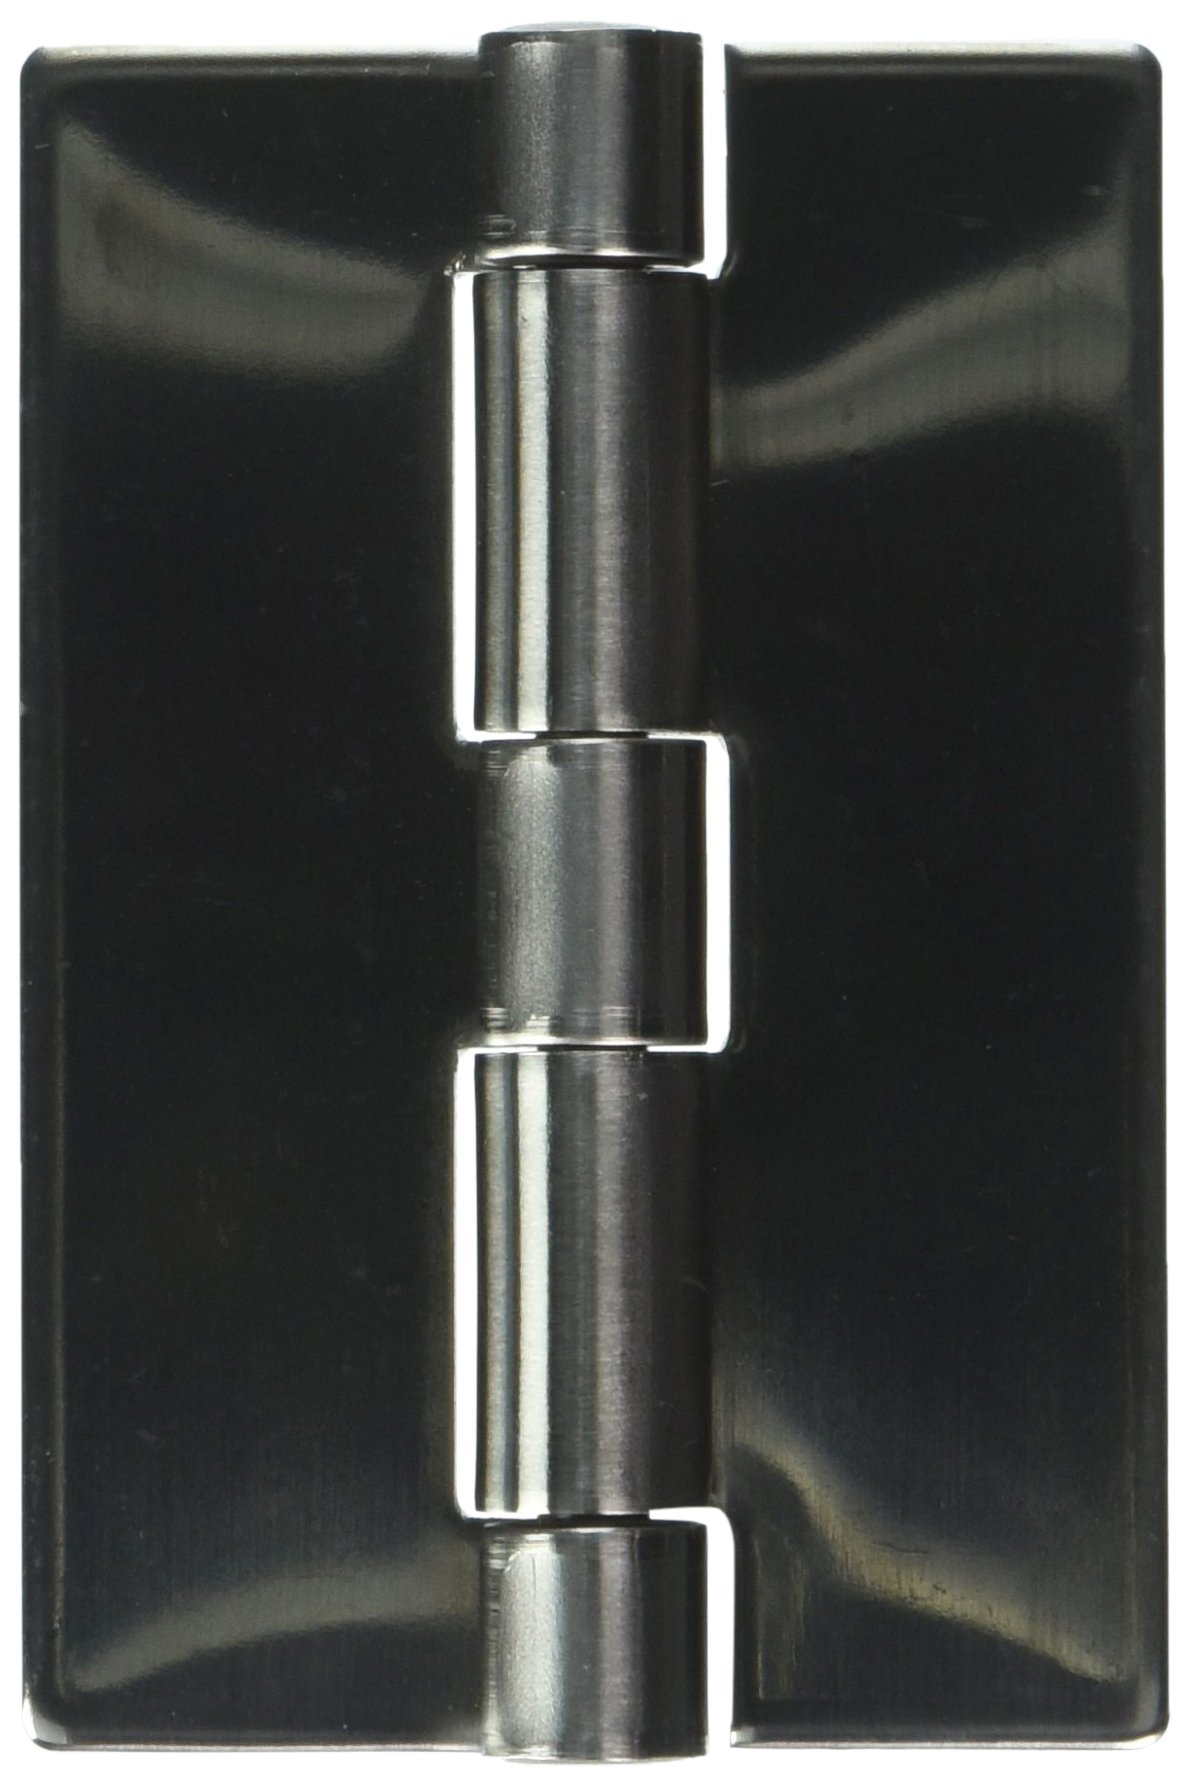 Sugatsune HNH-75CL Weld On Lift Off Hinge, Stainless Steel 304, Mirror Finish, Left Handedness, 3mm Leaf Thickness, 70mm Open Width, 12mm Pin Diameter